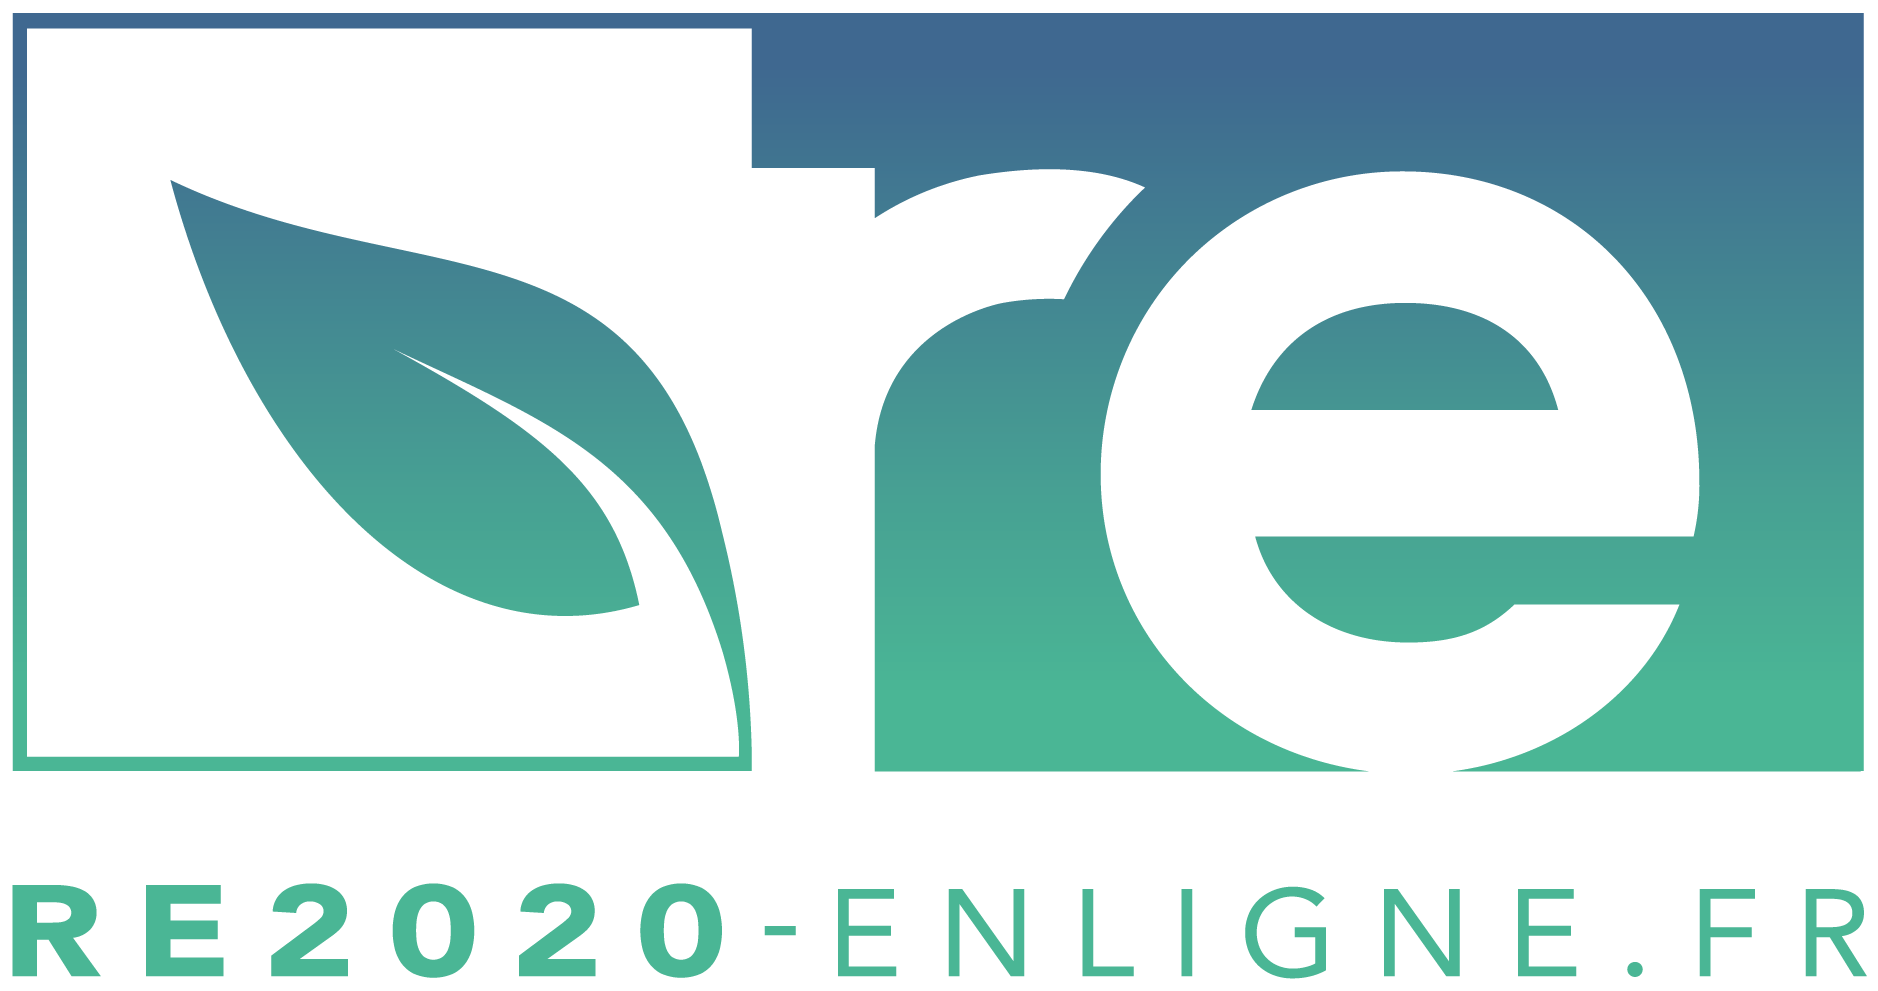 RE2020-enligne.fr